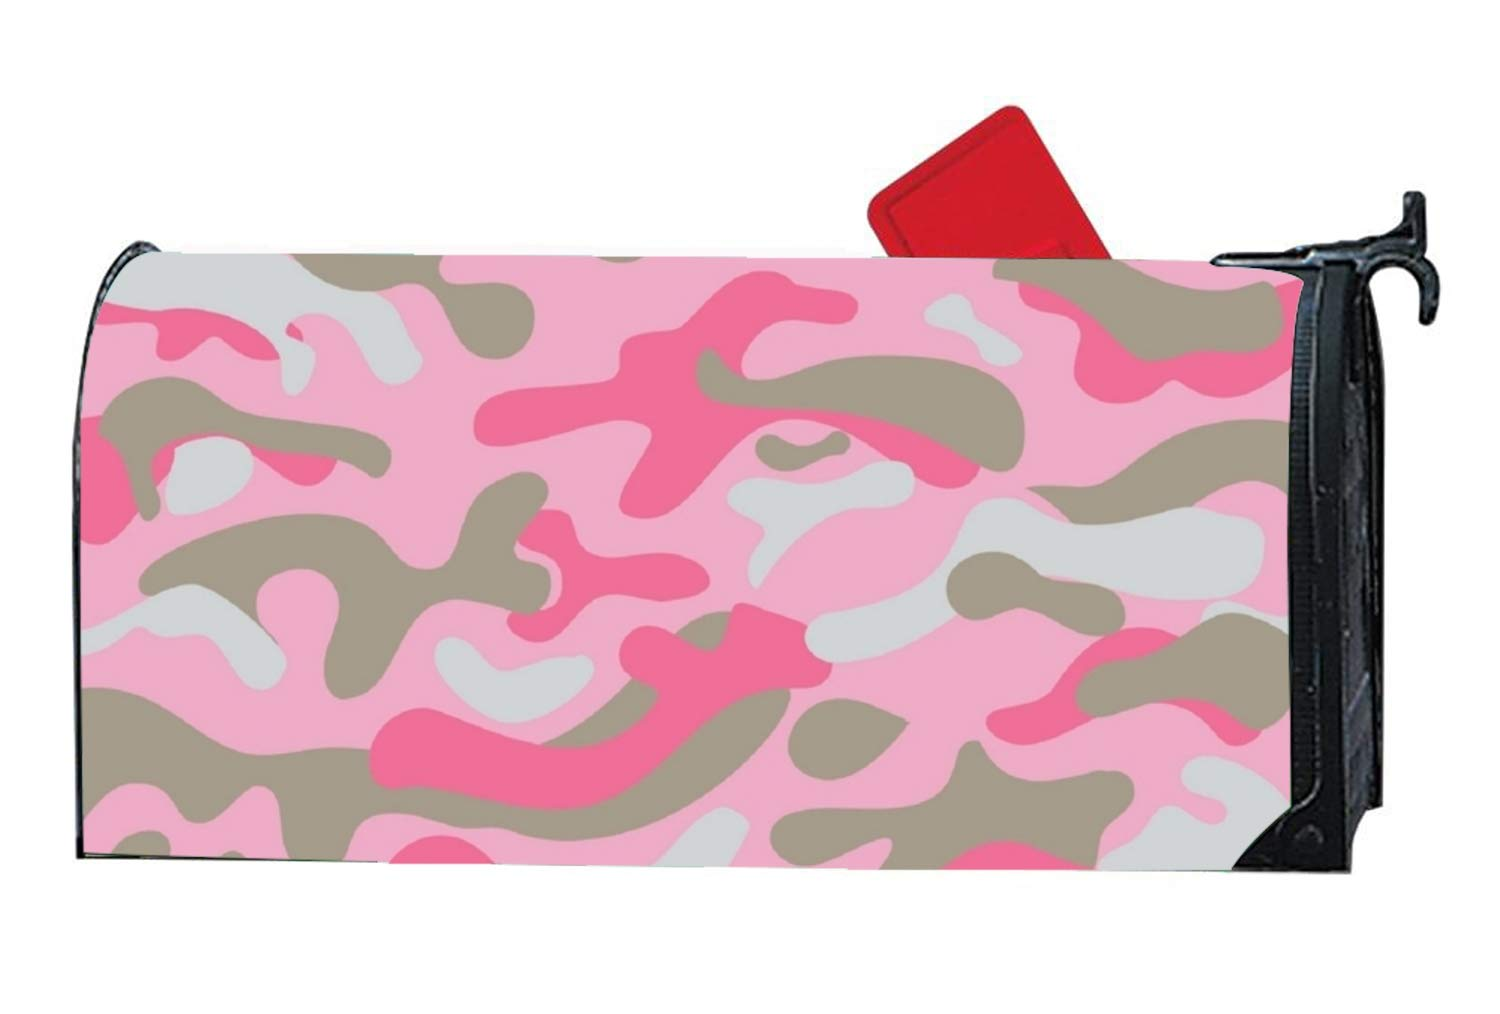 Rust-Proof Mail Box Covers Light Pink Camo Mailbox Makeover Cover